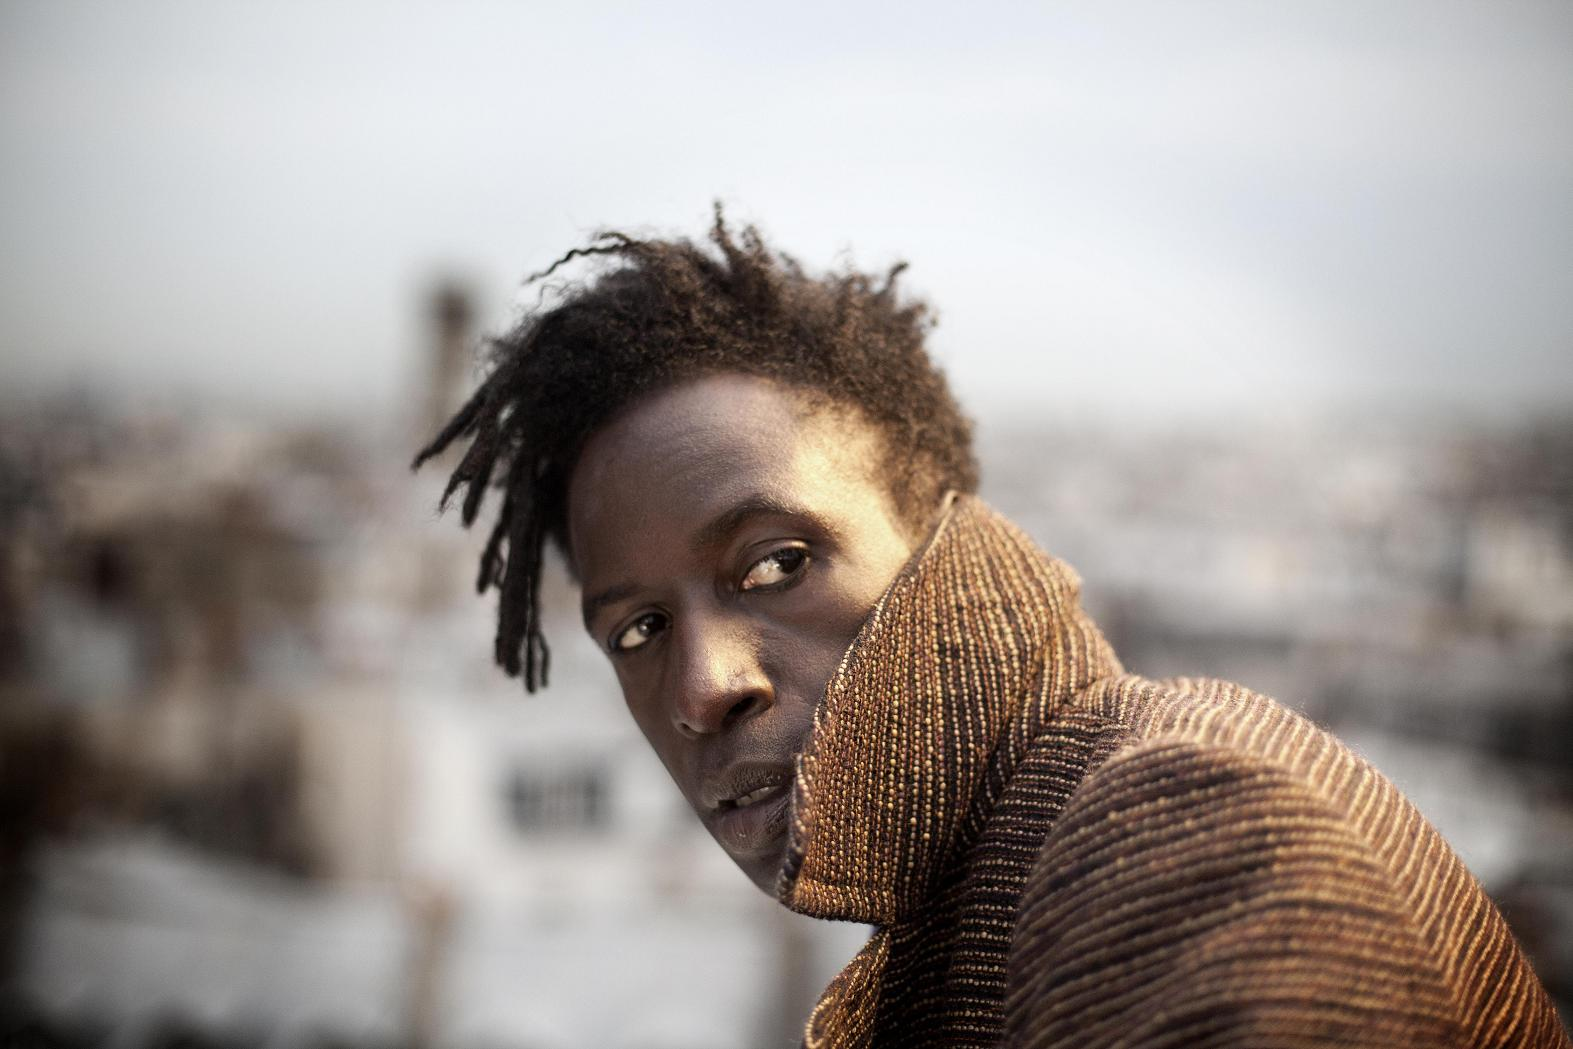 Read: Drowned In Sound interviews Saul Williams ahead of his LGW performance